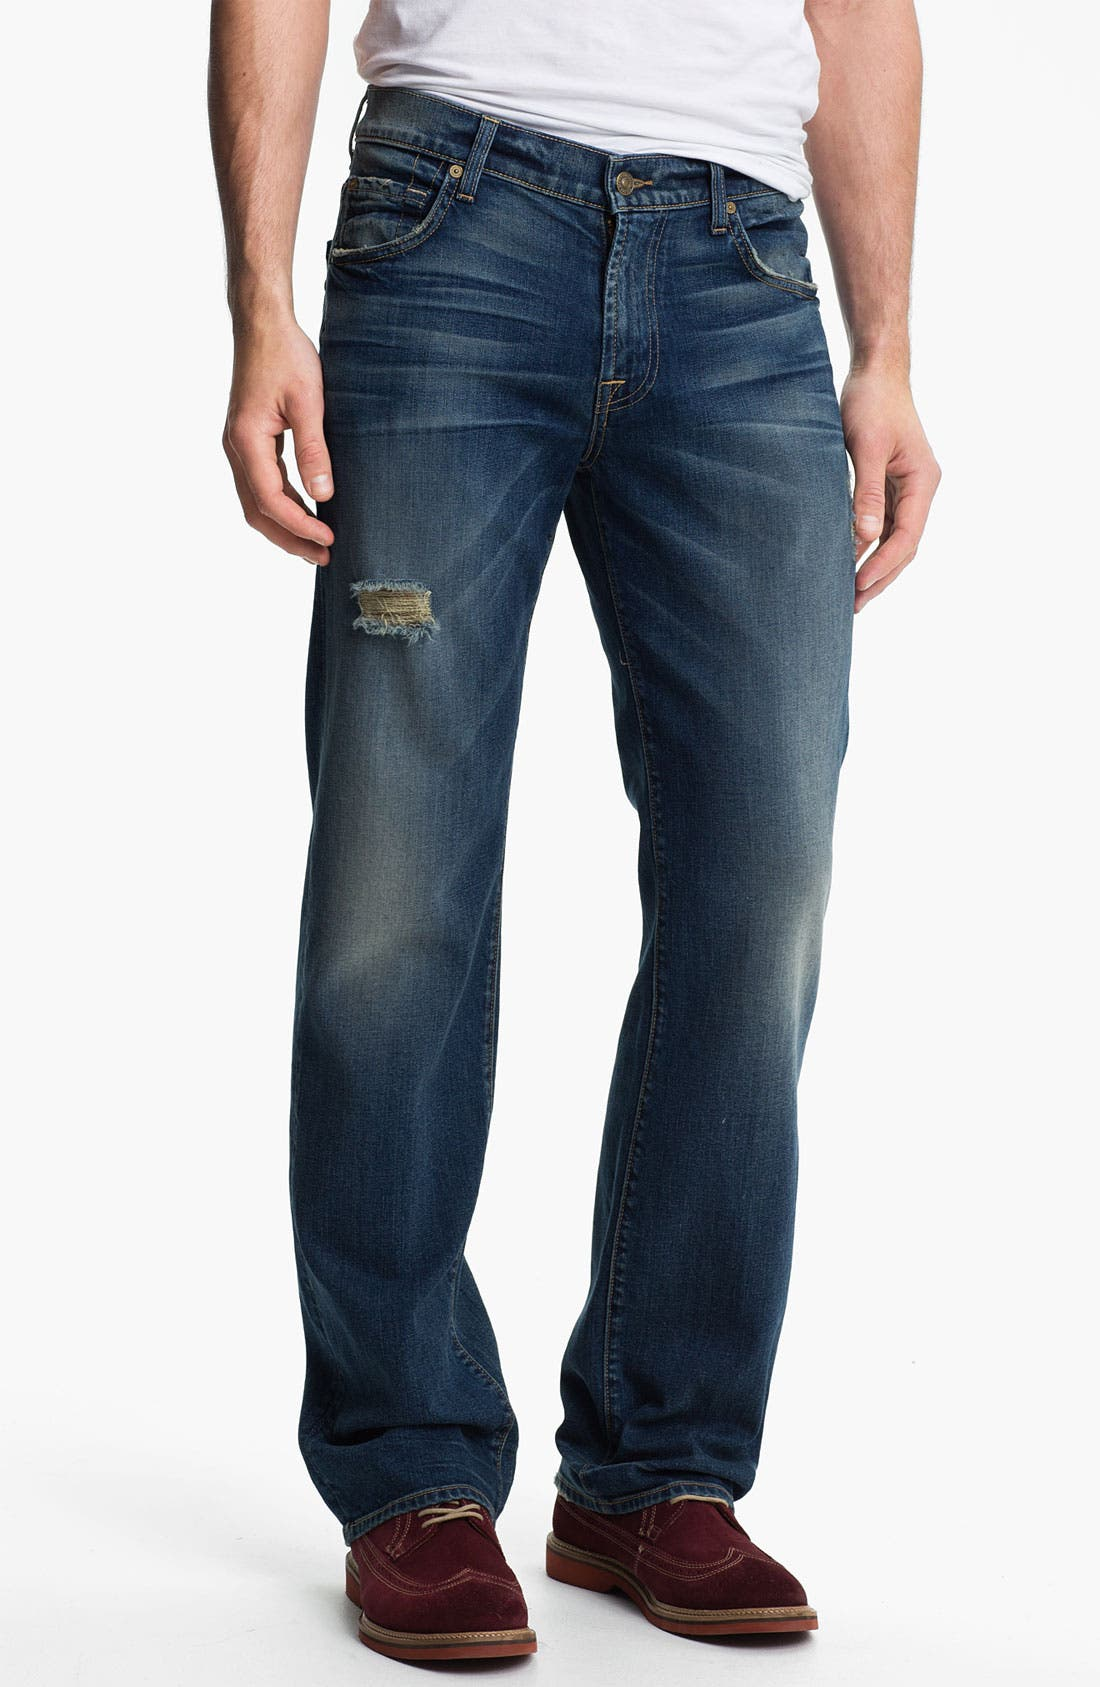 Alternate Image 1 Selected - 7 For All Mankind® 'Austyn' Relaxed Straight Leg Jeans (Ocean Mist)